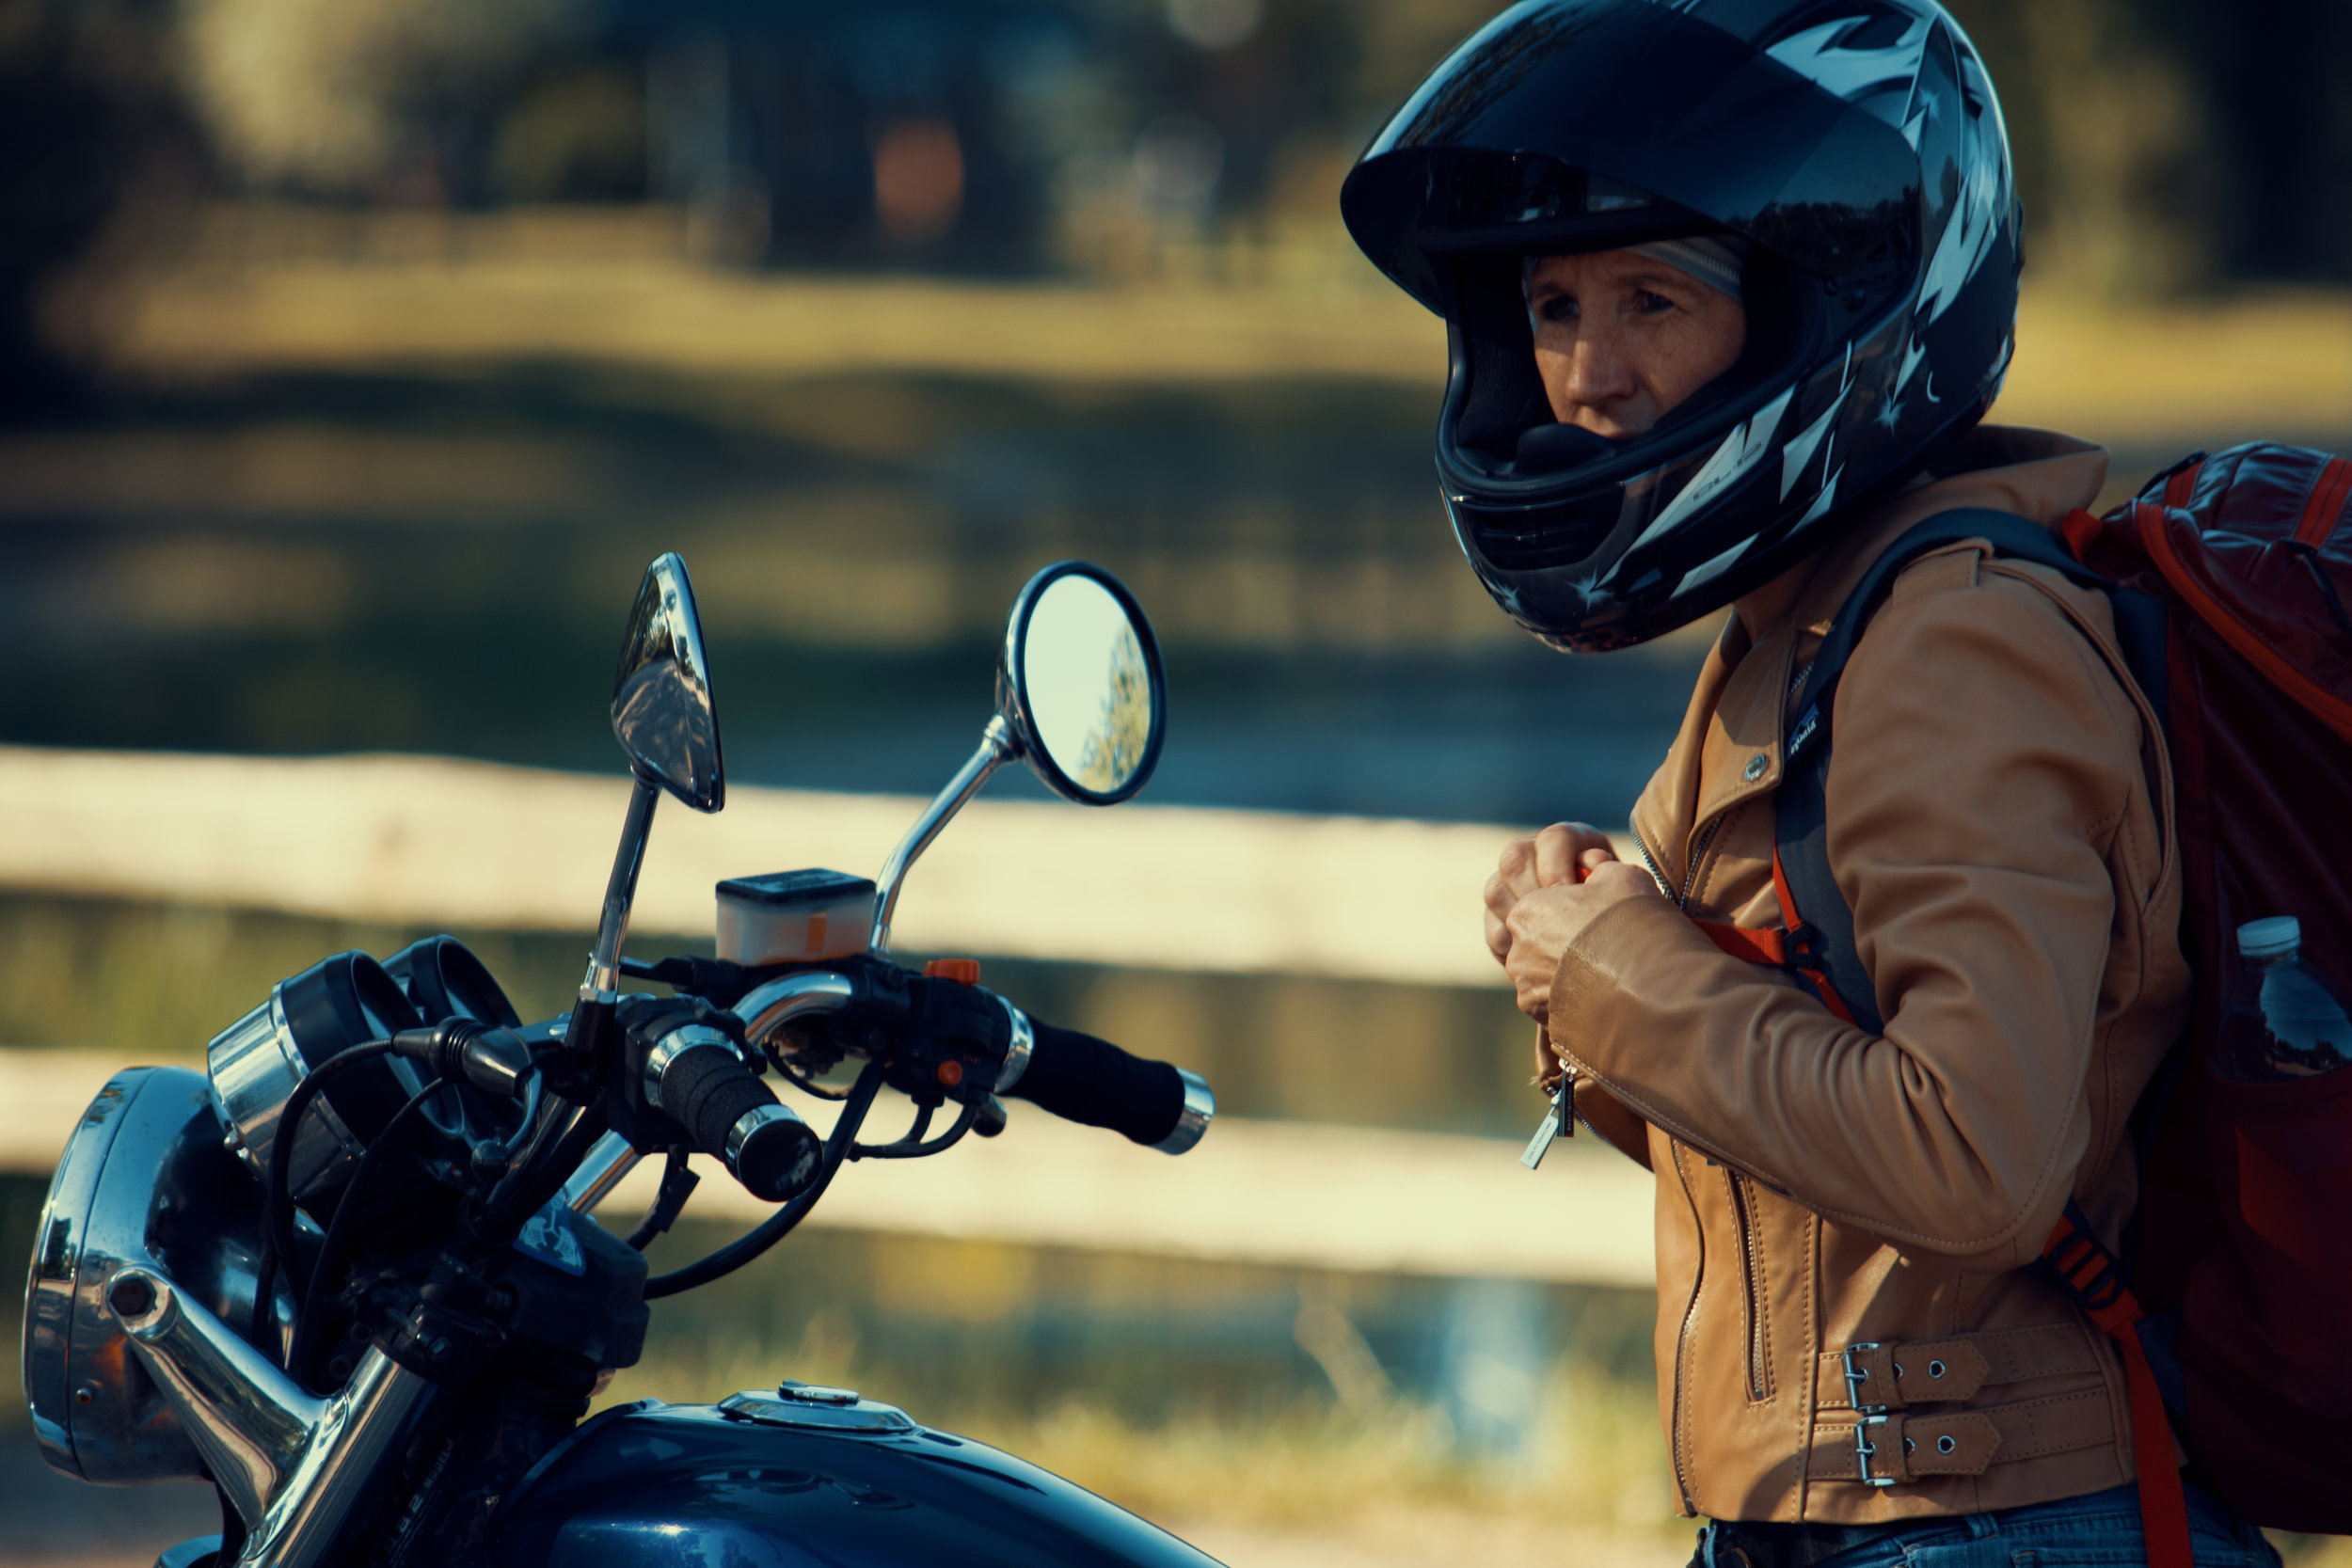 Heather strapping up to ride her motorcycle in,  Roadmap